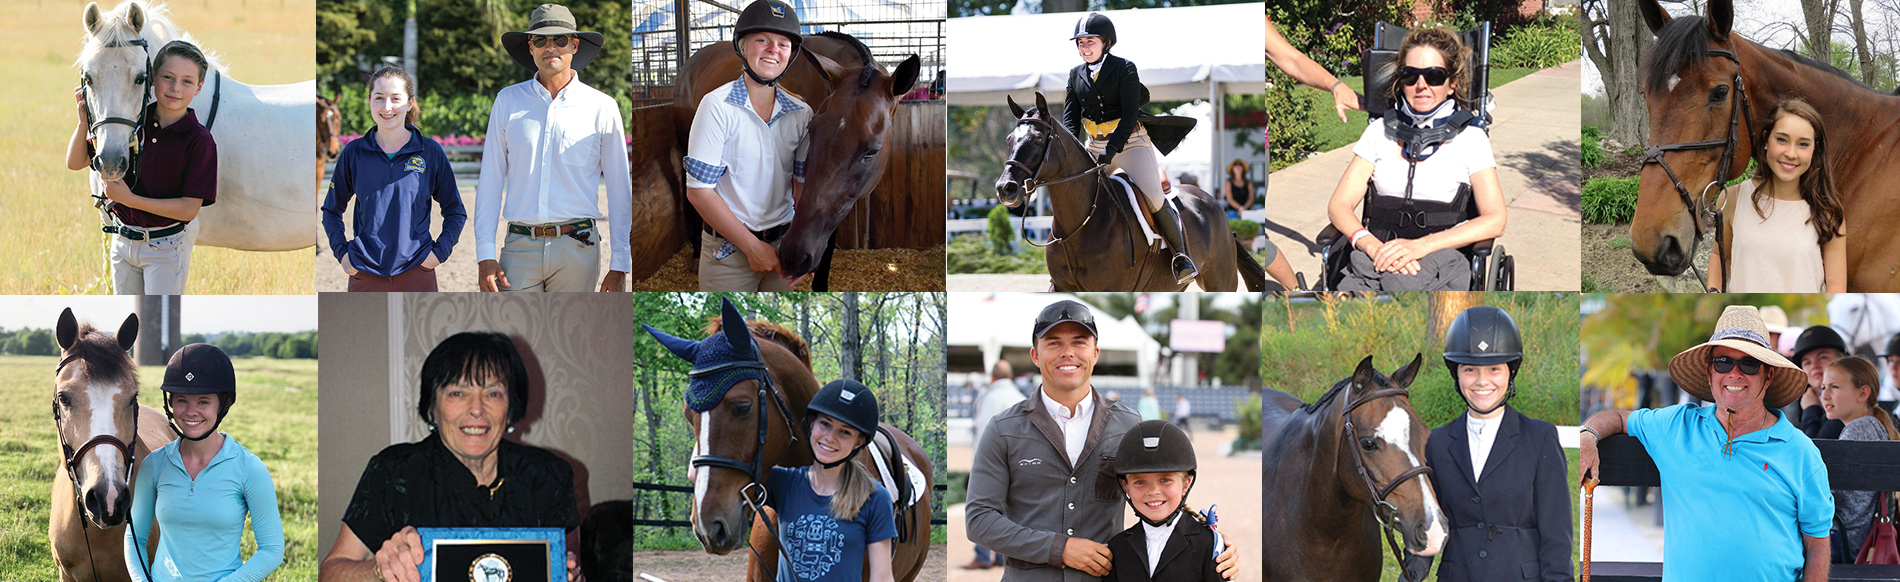 USHJA Foundation: Their Stories Start With You!